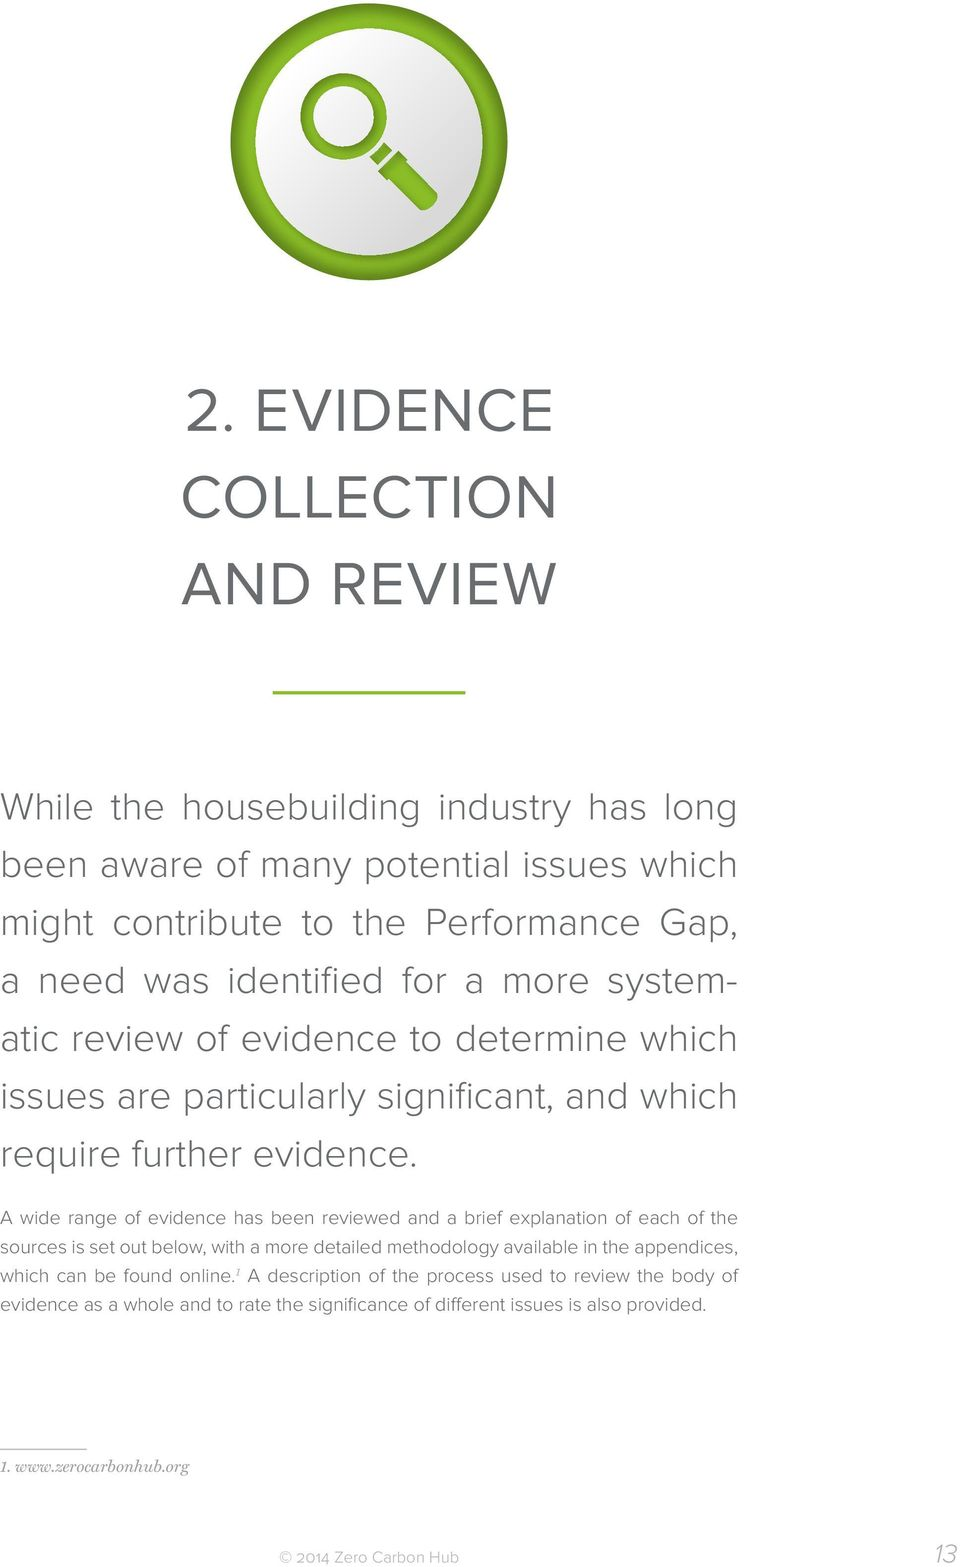 A wide range of evidence has been reviewed and a brief explanation of each of the sources is set out below, with a more detailed methodology available in the appendices, which